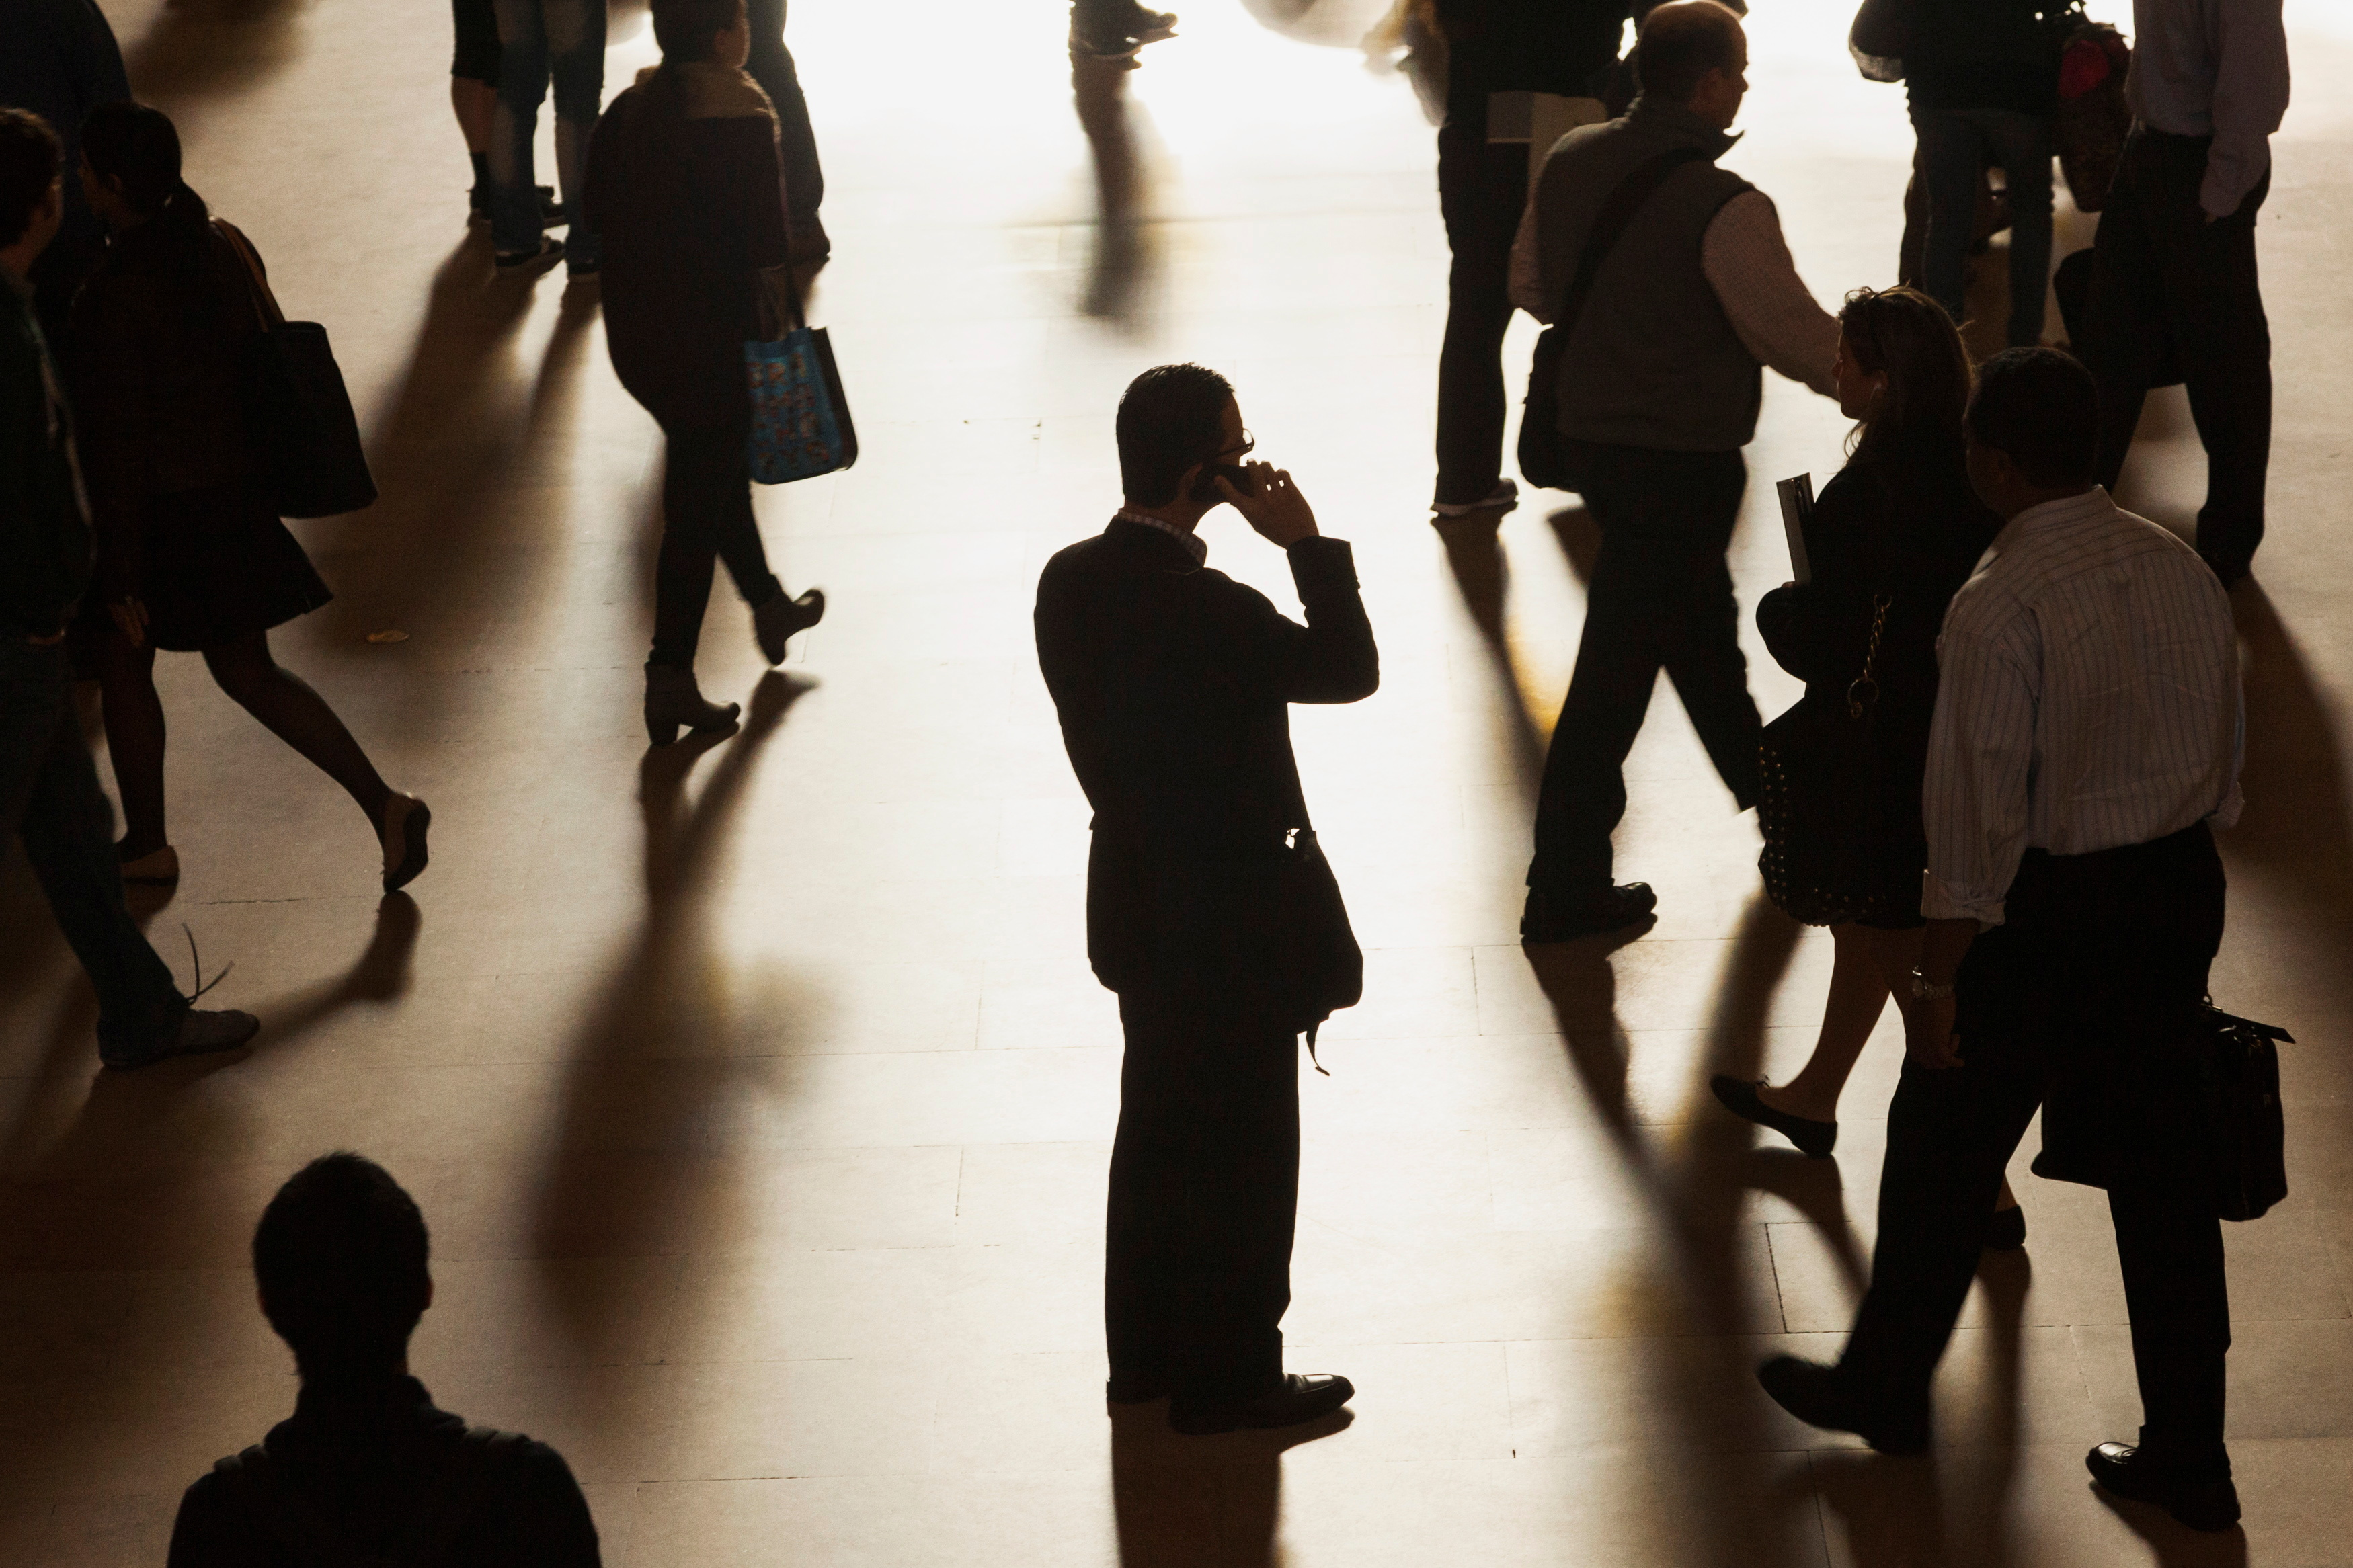 A man stands in the middle of Grand Central Terminal as he speaks on a cell phone in New York, September 25, 2013. REUTERS/Zoran Milich